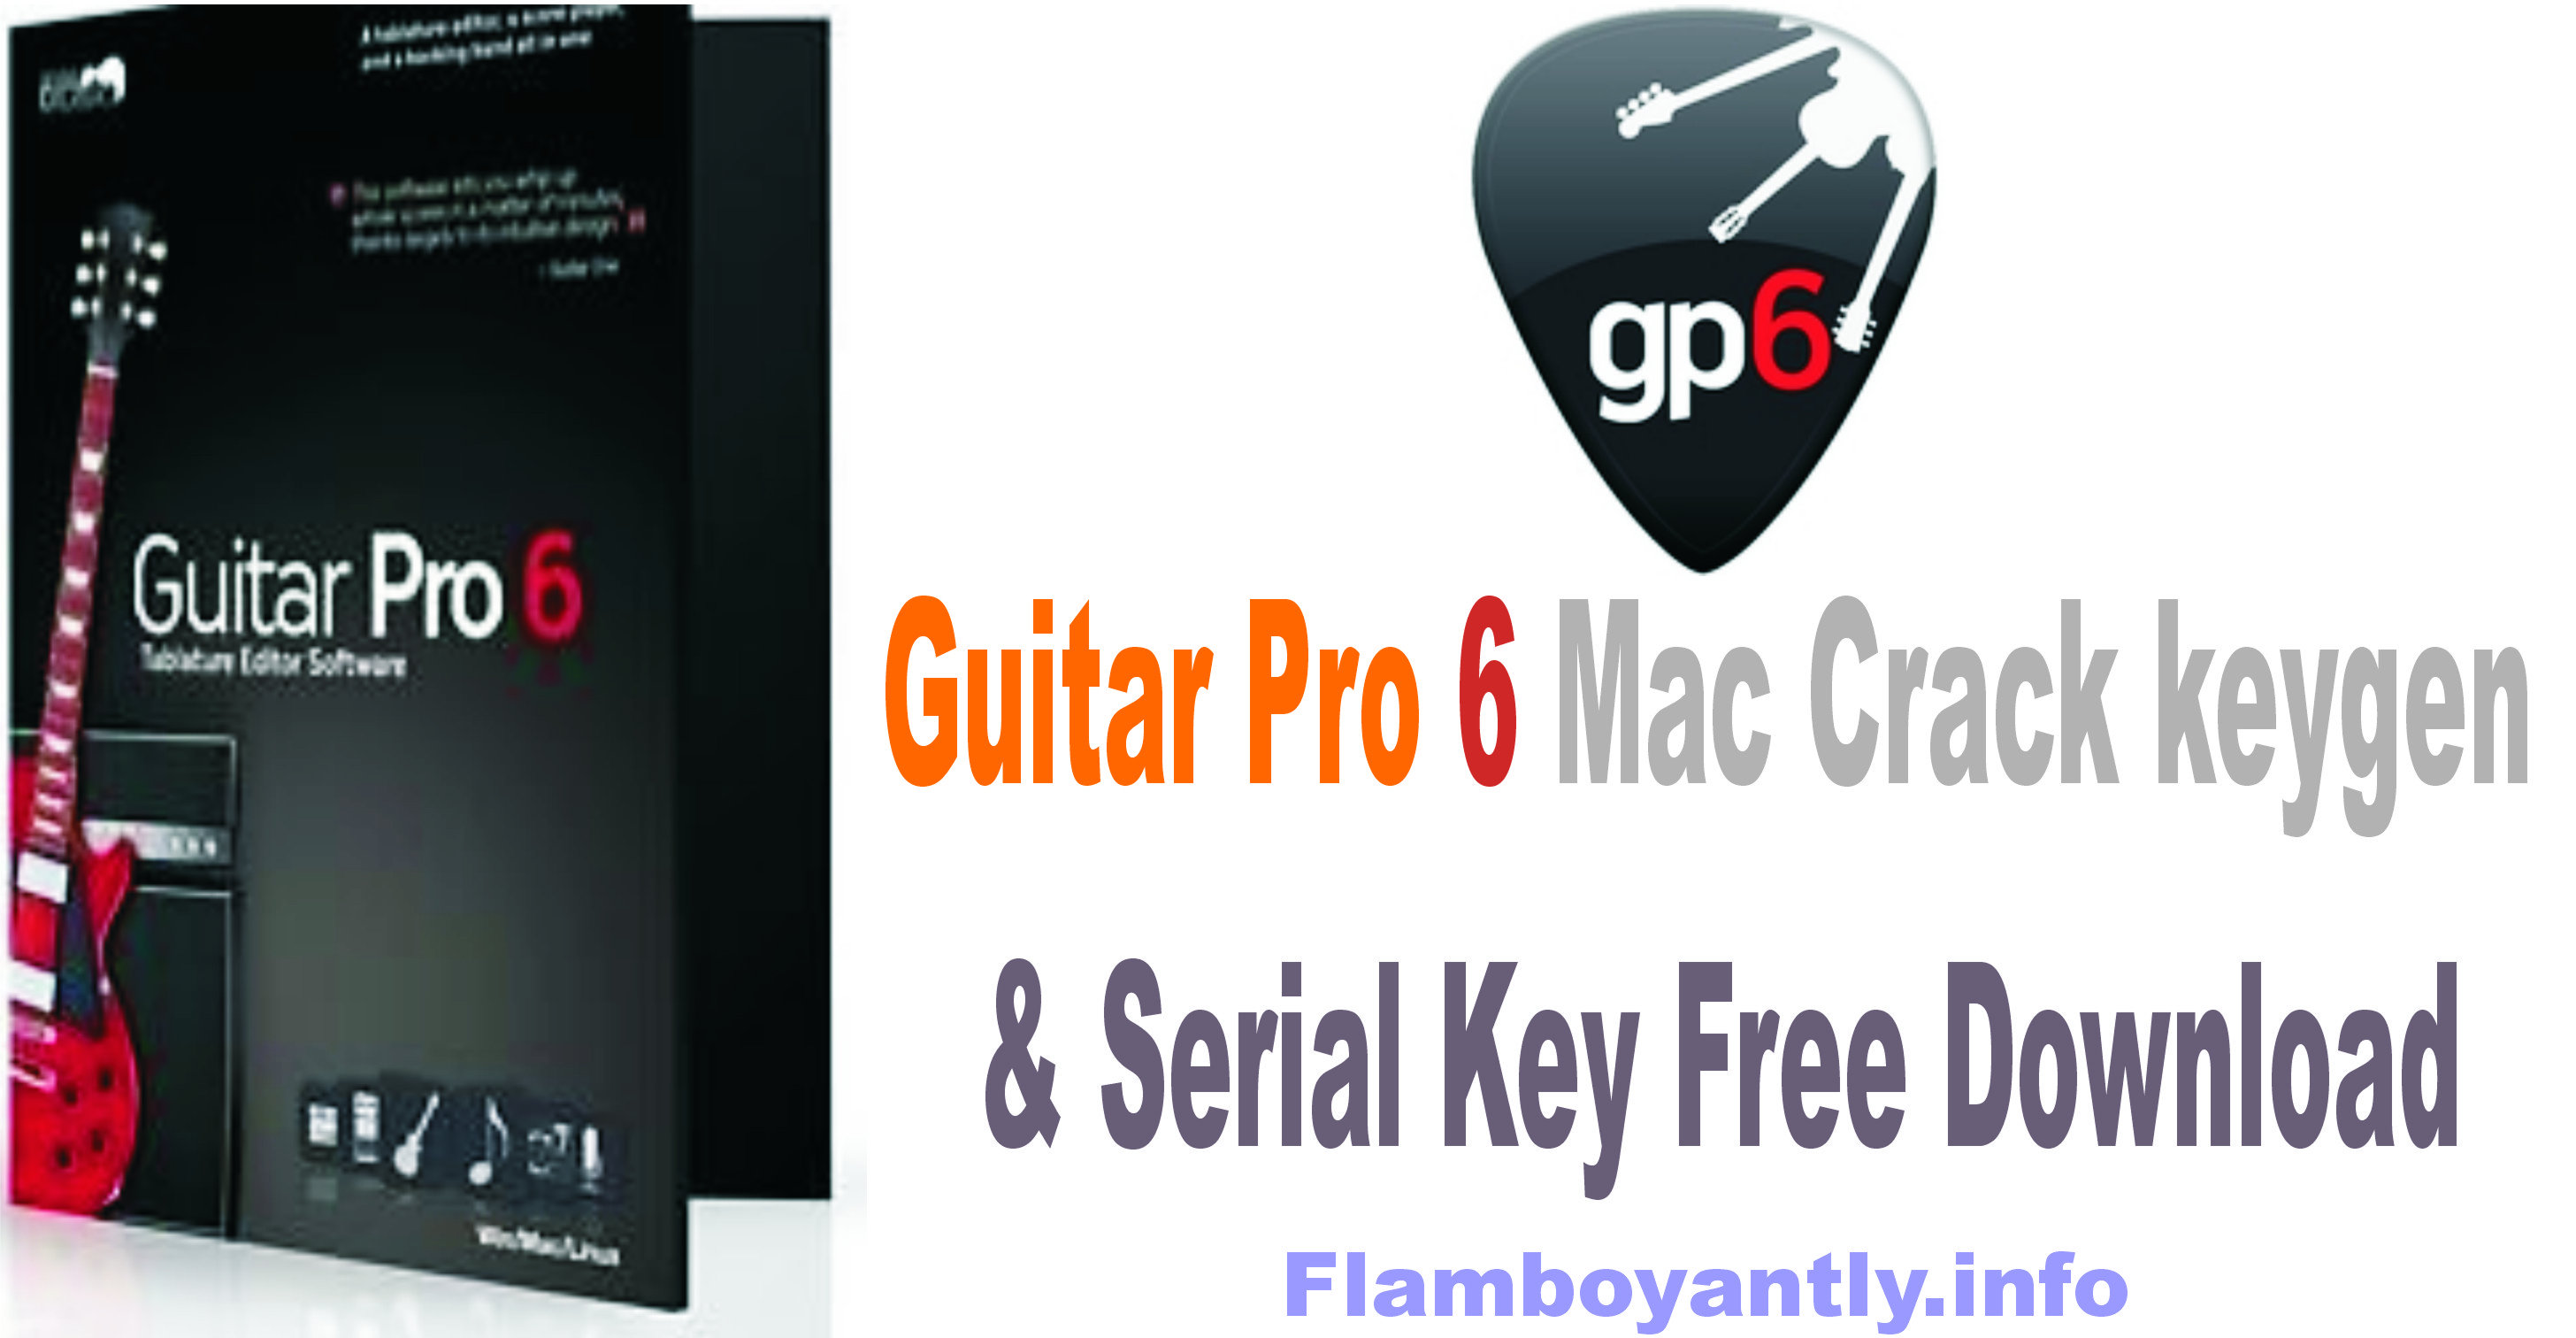 Guitar Pro 6 Mac Crack keygen & Serial Key Free Download